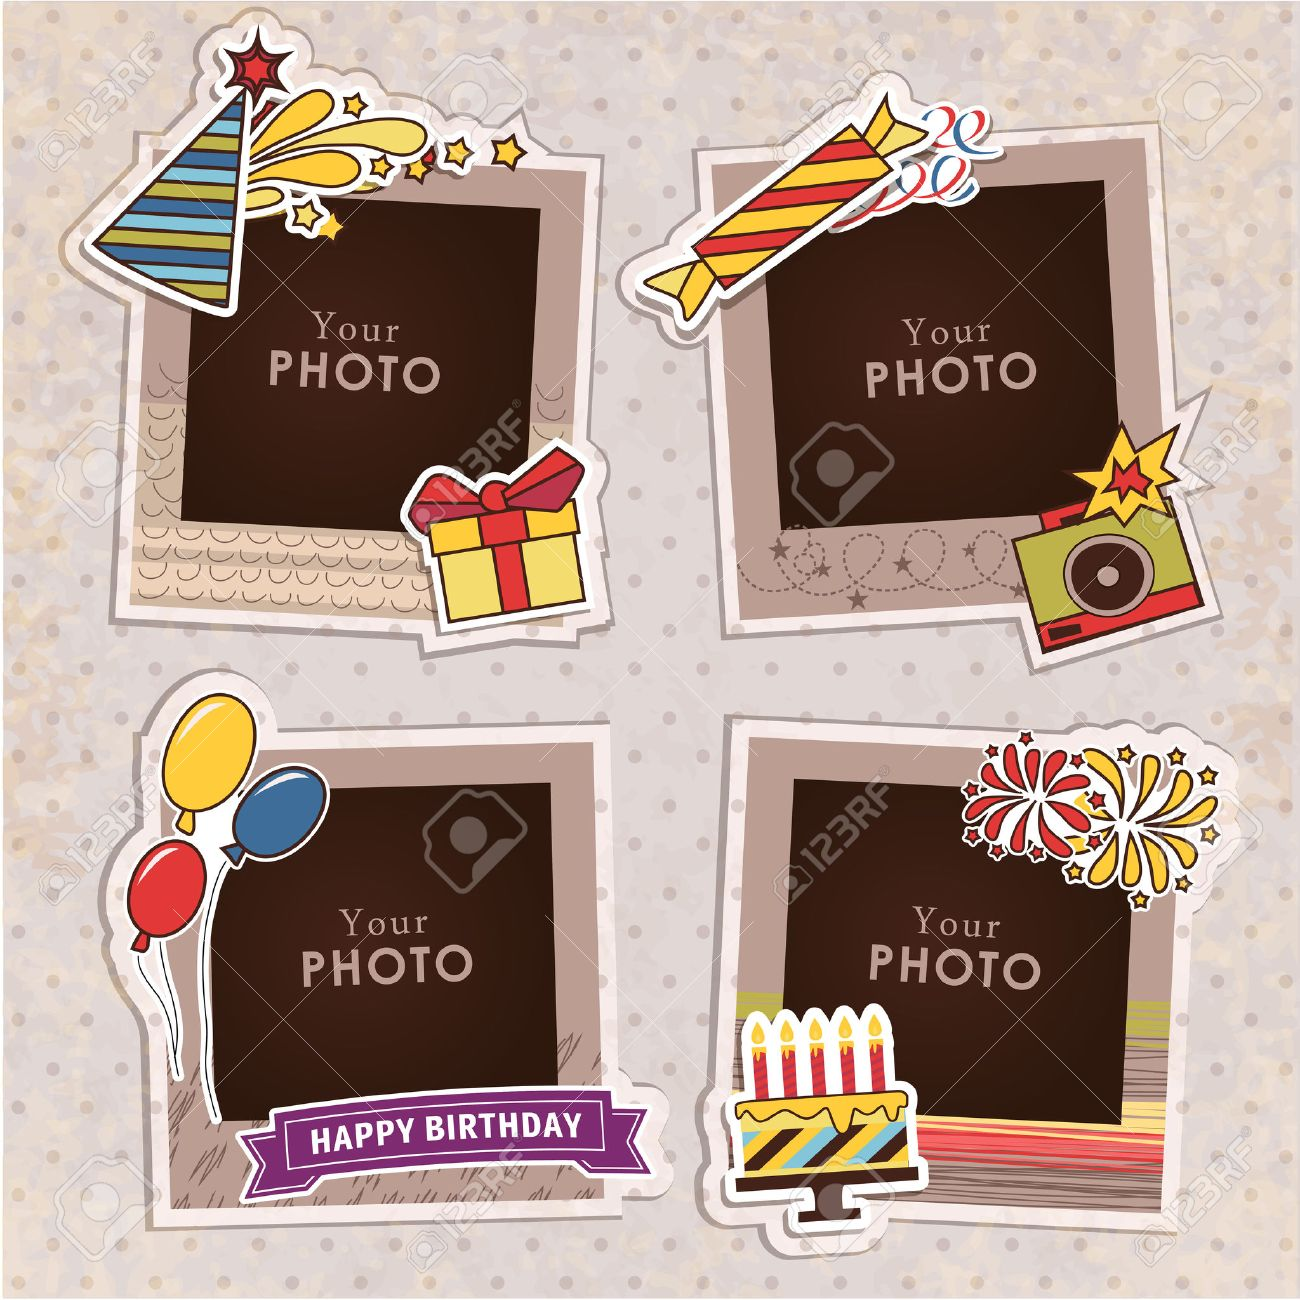 Design photo frames on nice background. Decorative template for baby, family or memories. Scrapbook concept, vector illustration. Birthday - 49174033